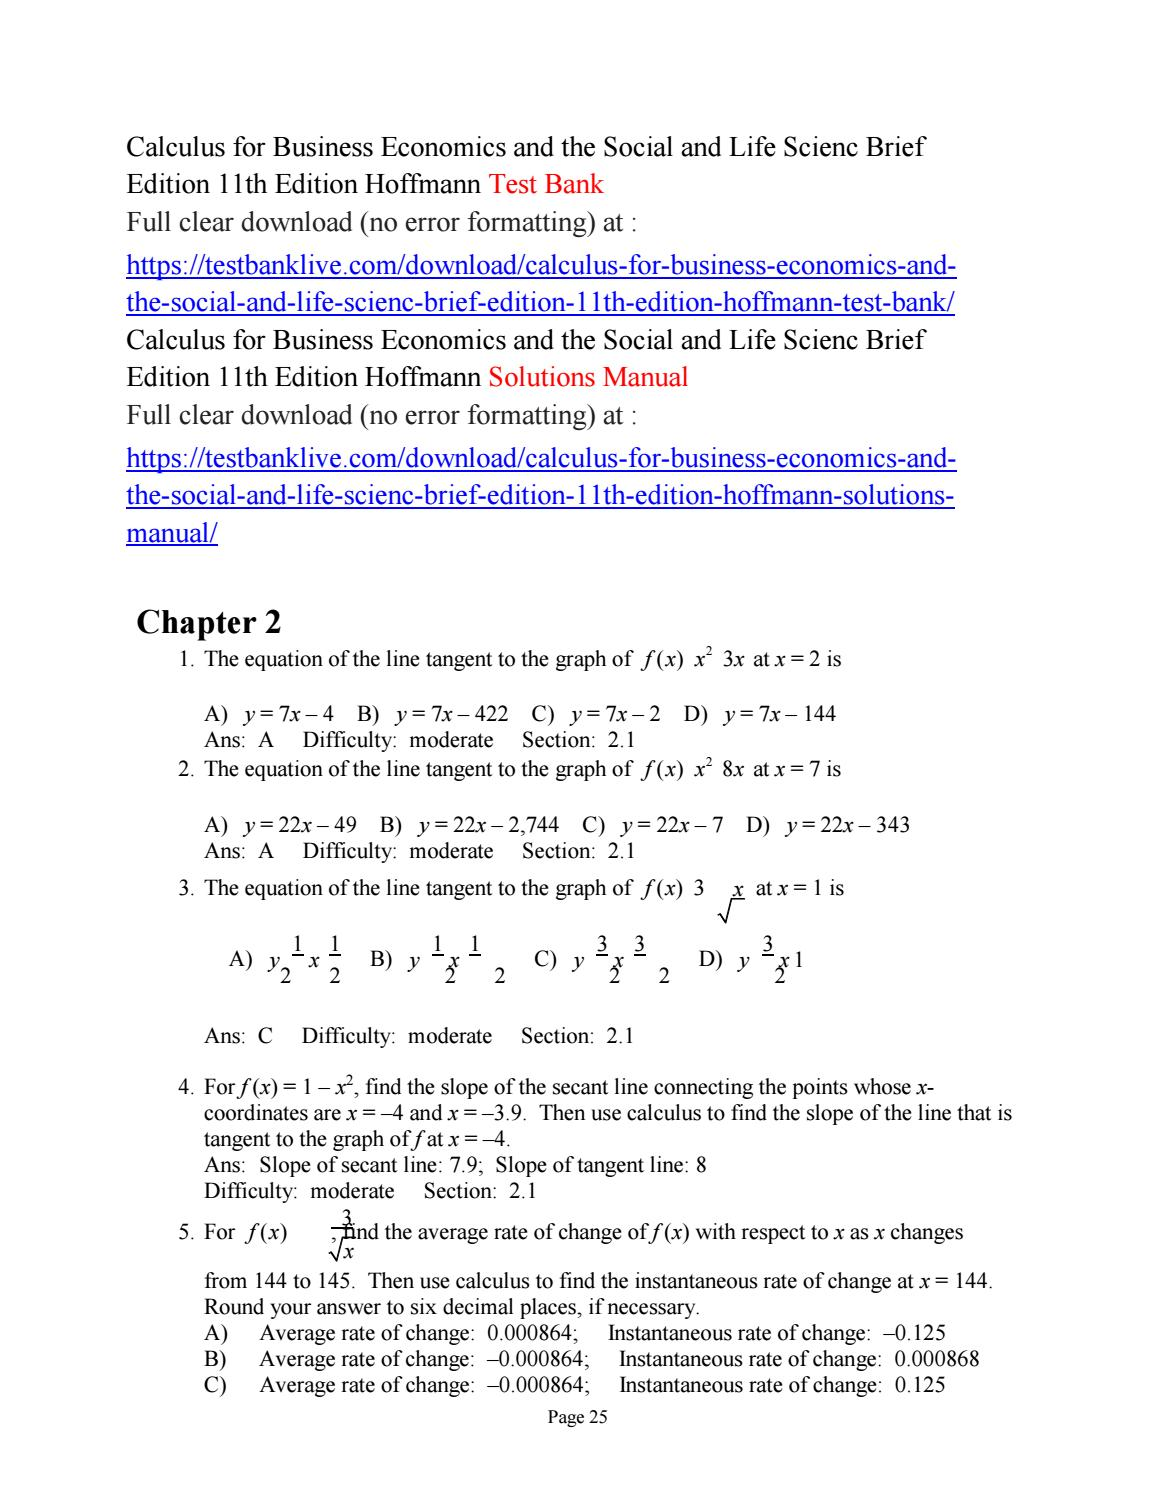 Calculus for business economics and the social and life scienc brief edition  11th edition hoffmann t by anna5551 - issuu